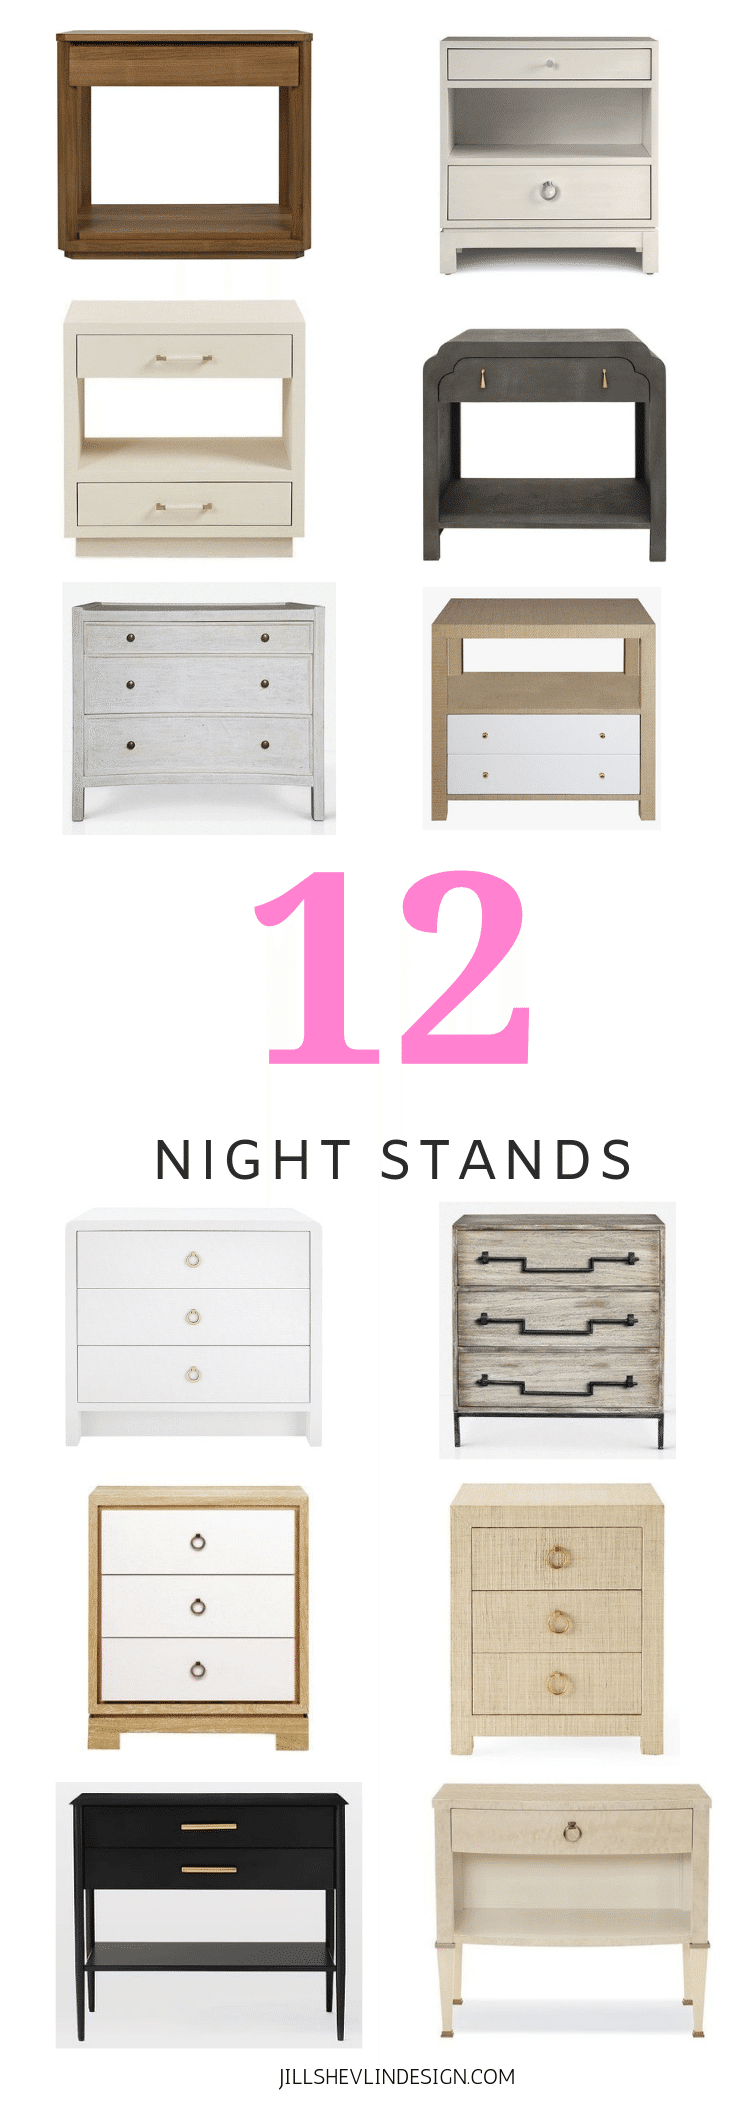 12 Nightstands Shop Night Stands Side Tables Vero Beach Coastal Home Decor Jill Shevlin Design Vero Beach